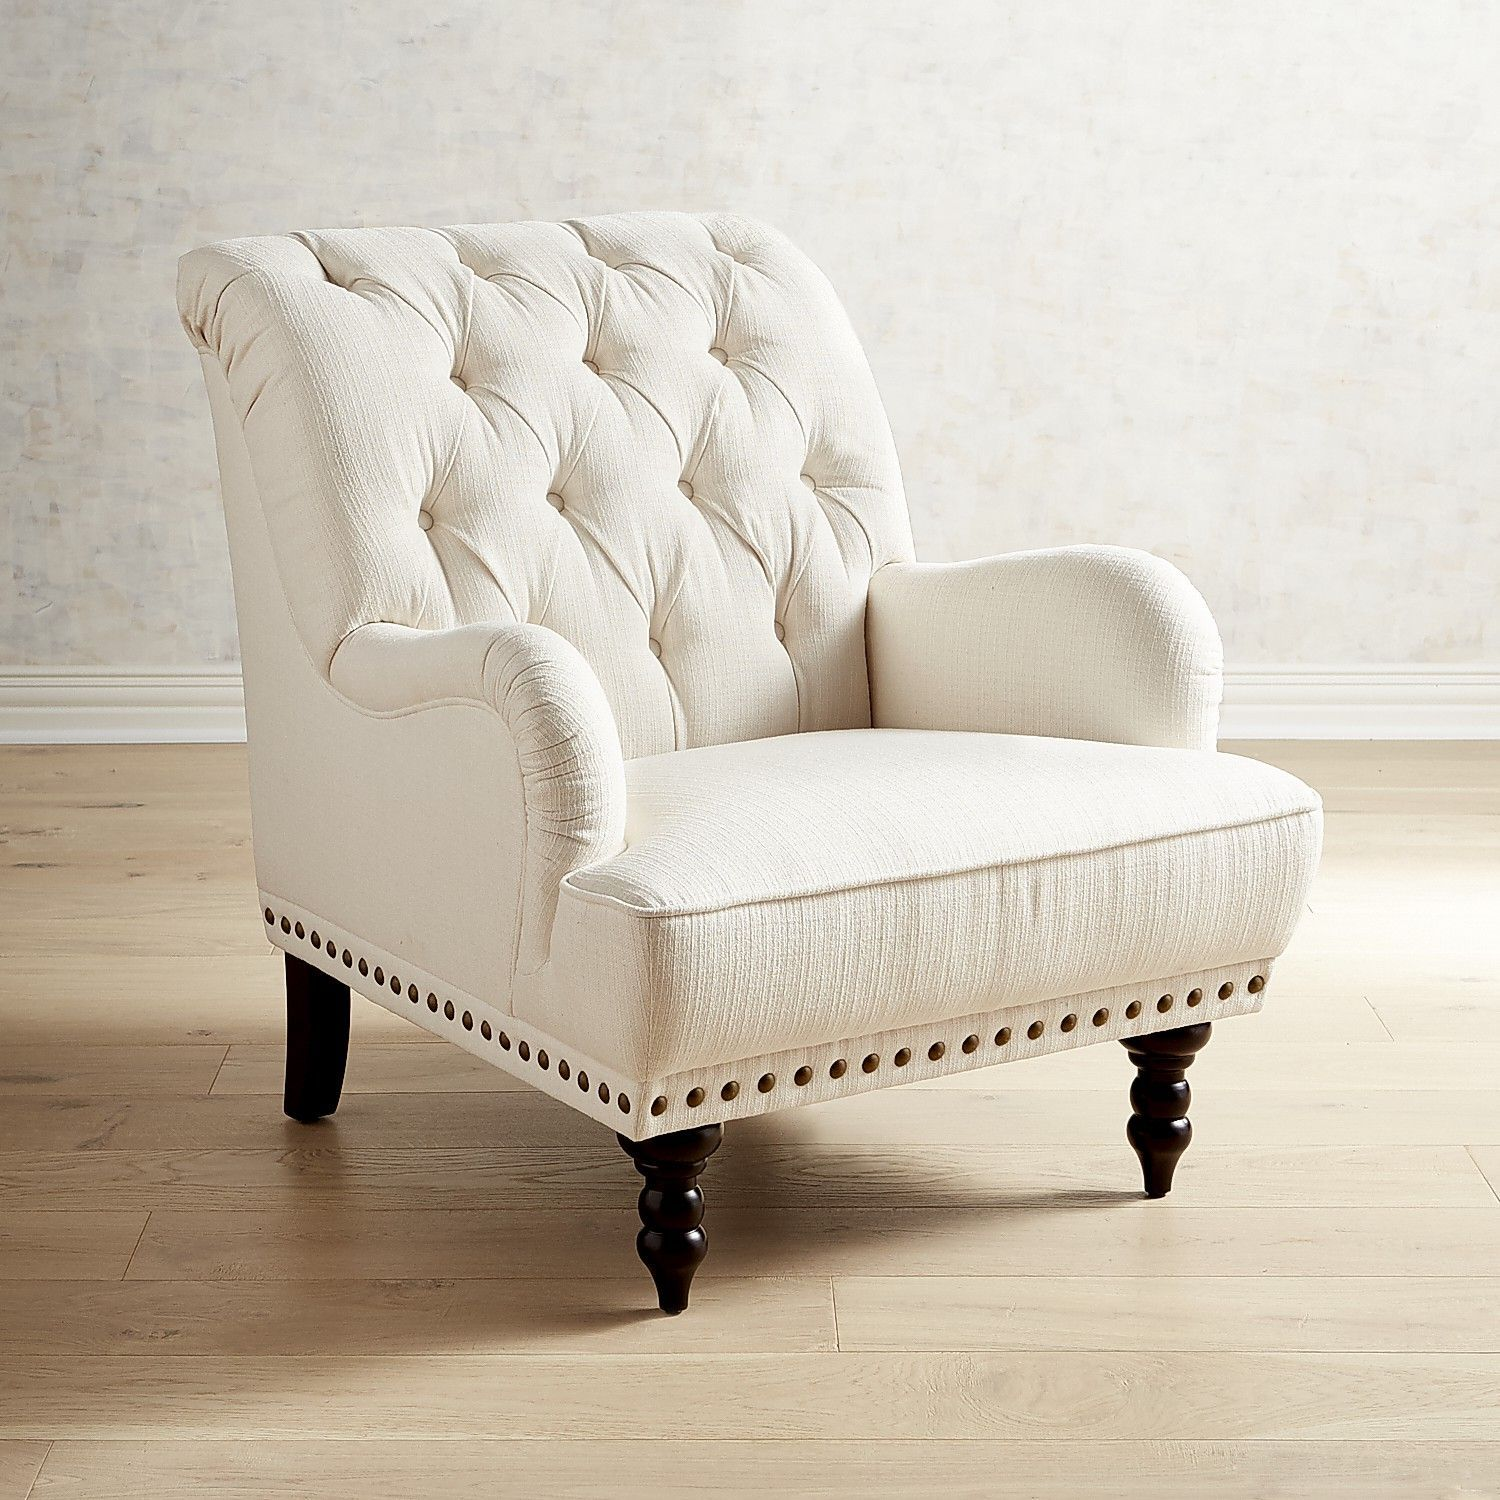 Chas pierformance ivory chair ivory and products